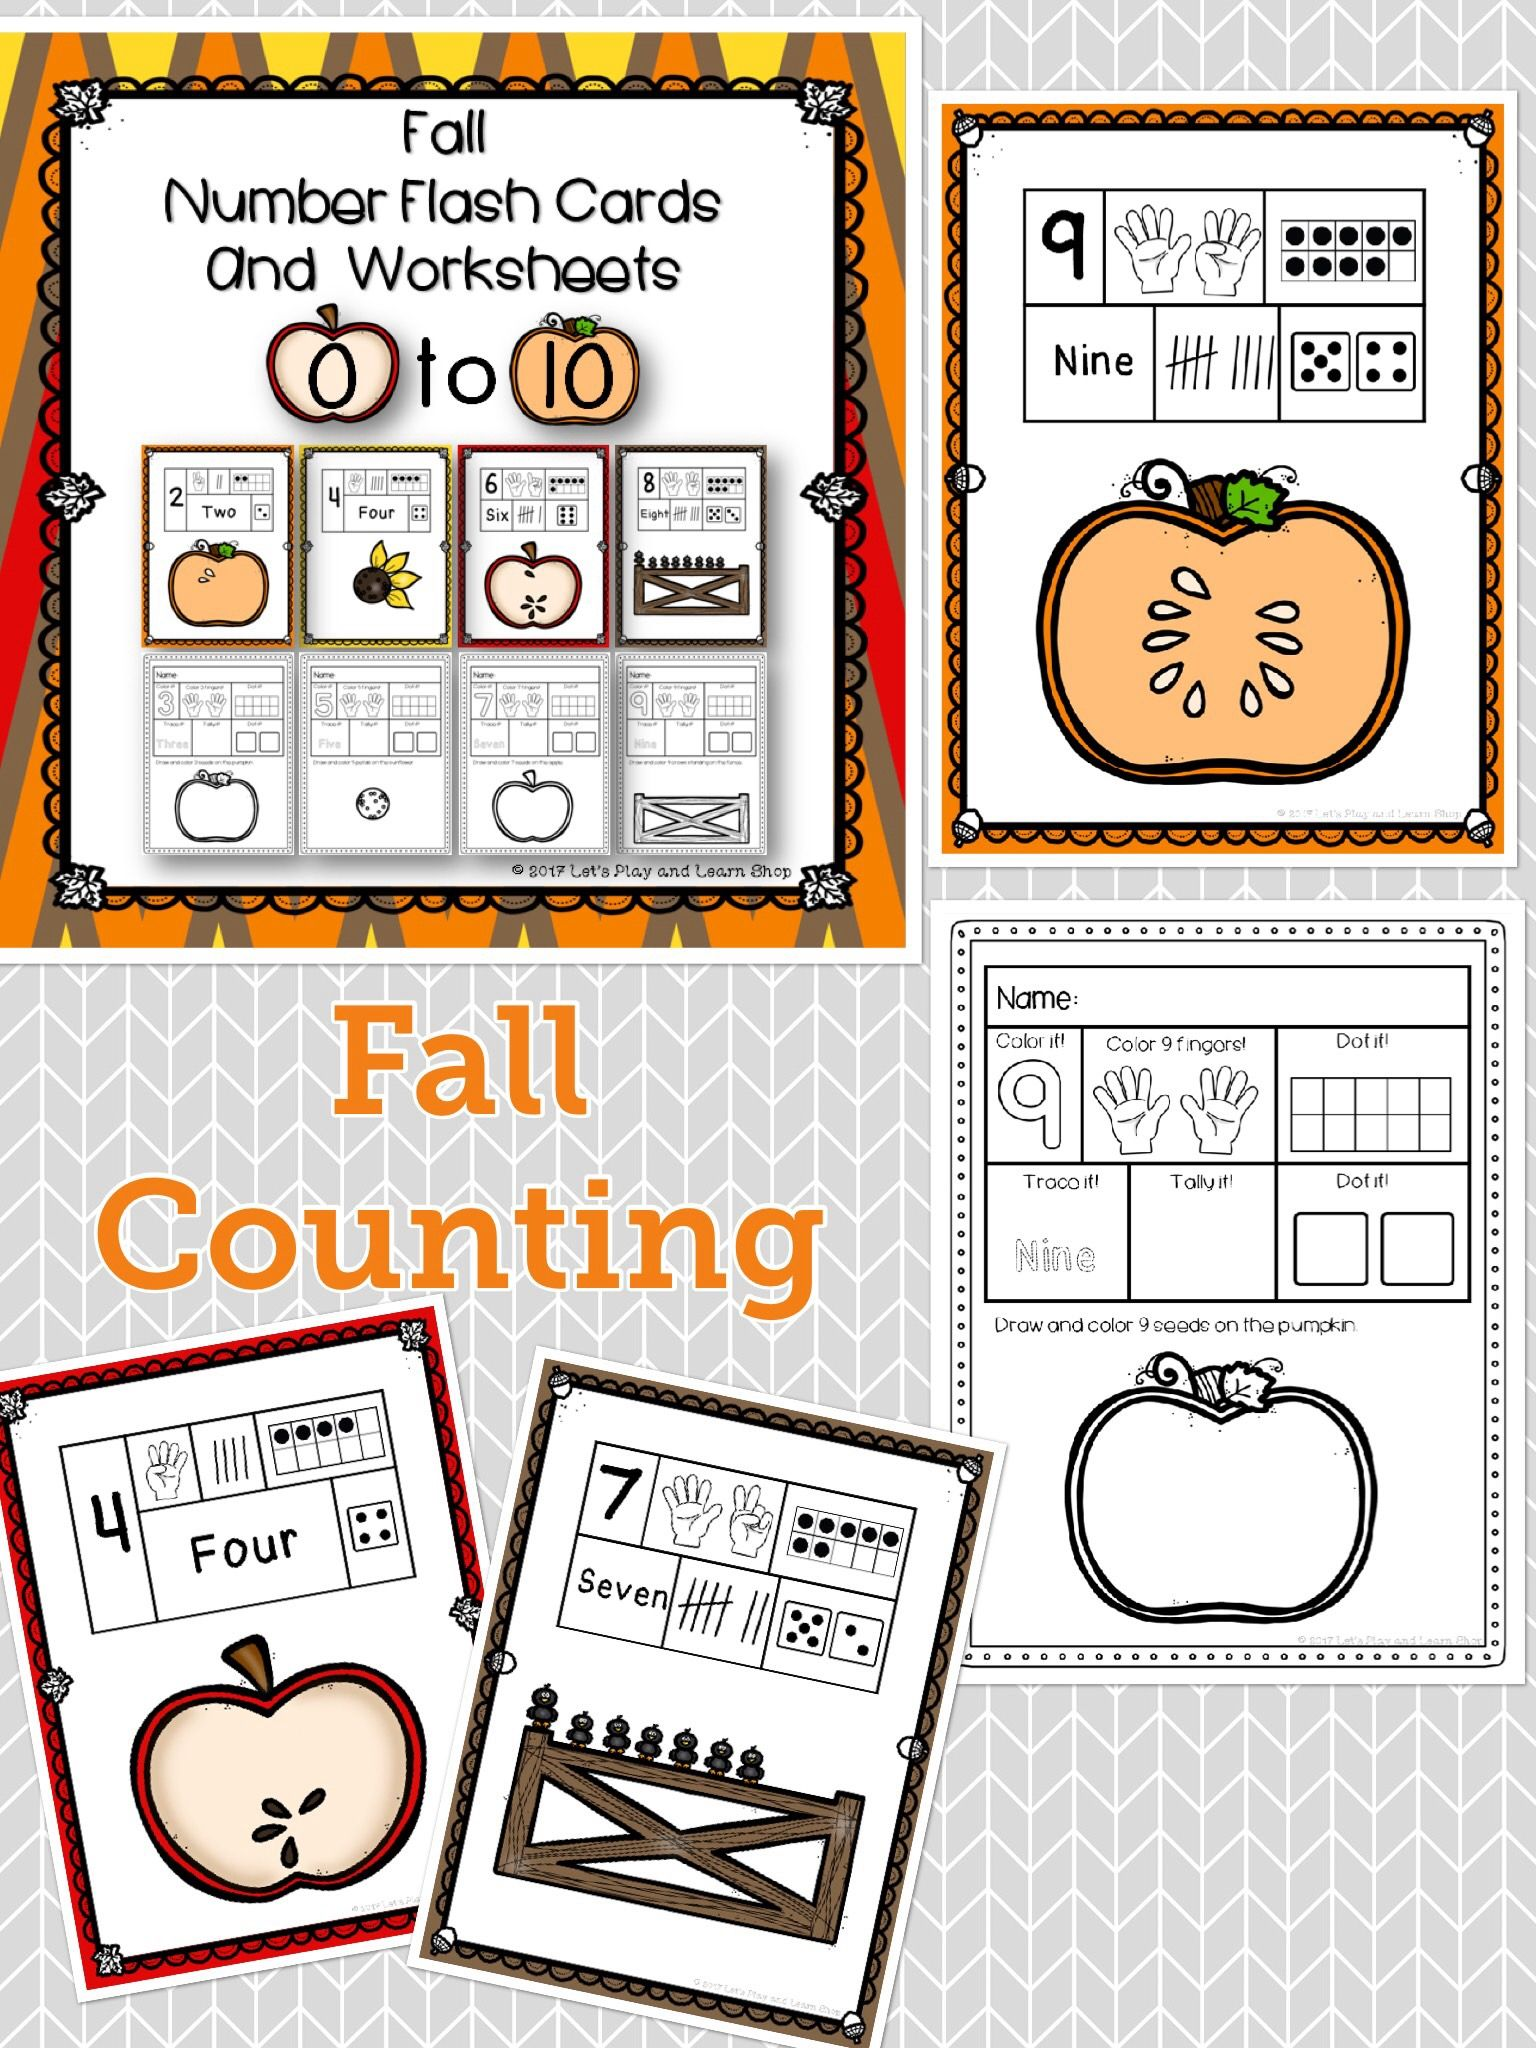 Fall Number Flash Cards And Worksheets For 0 10